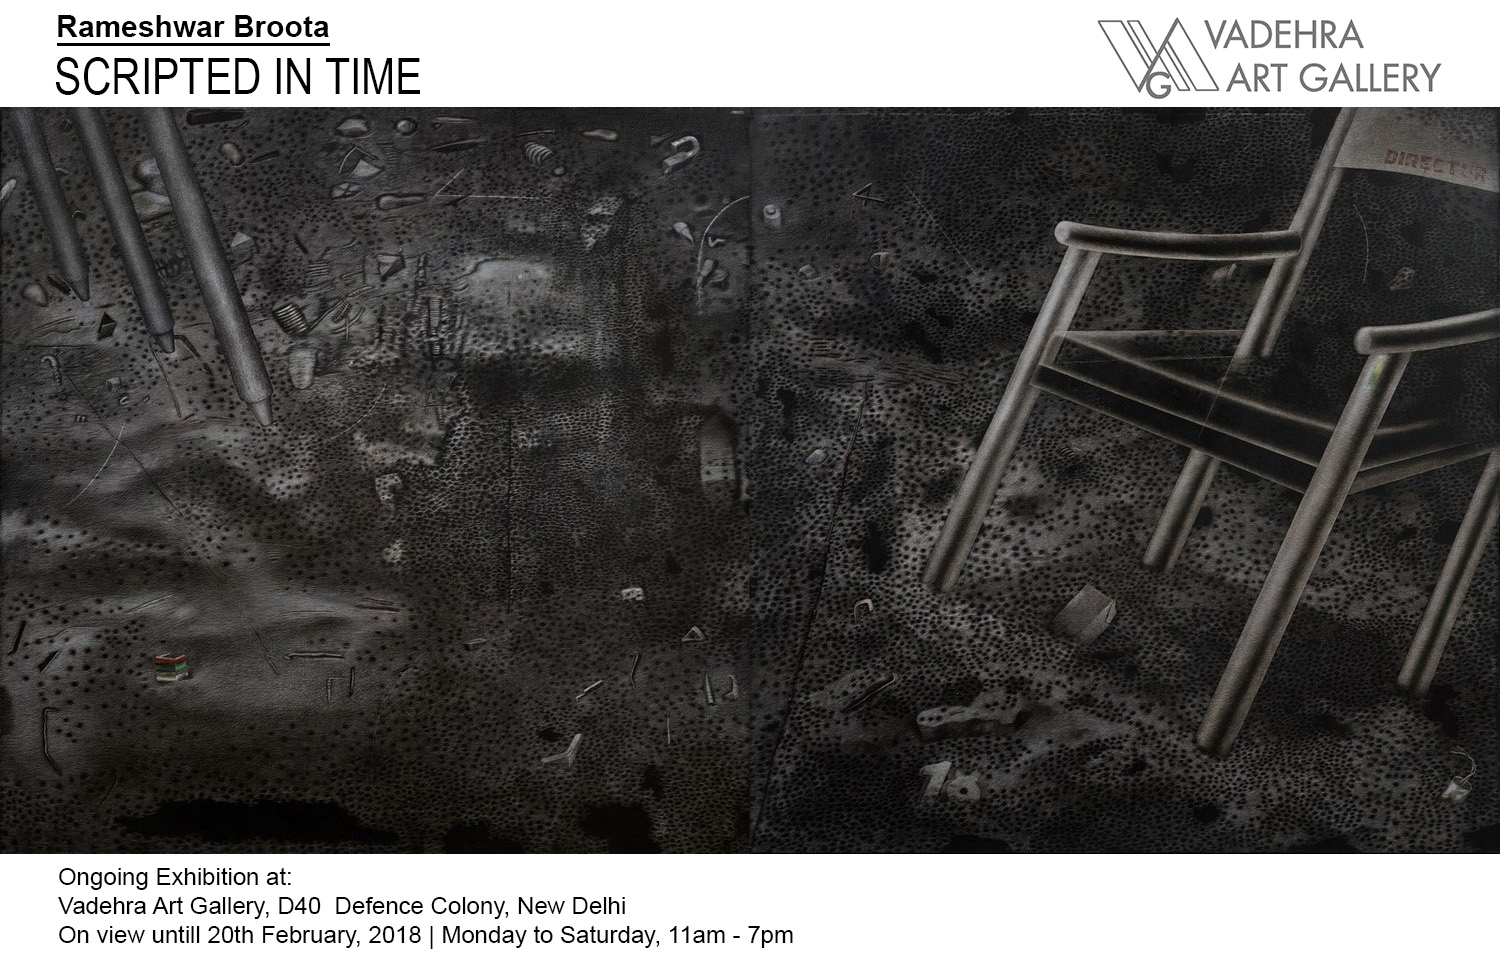 Exhibition of Paintings by Rameshwar Broota at Vadehra Art Gallery